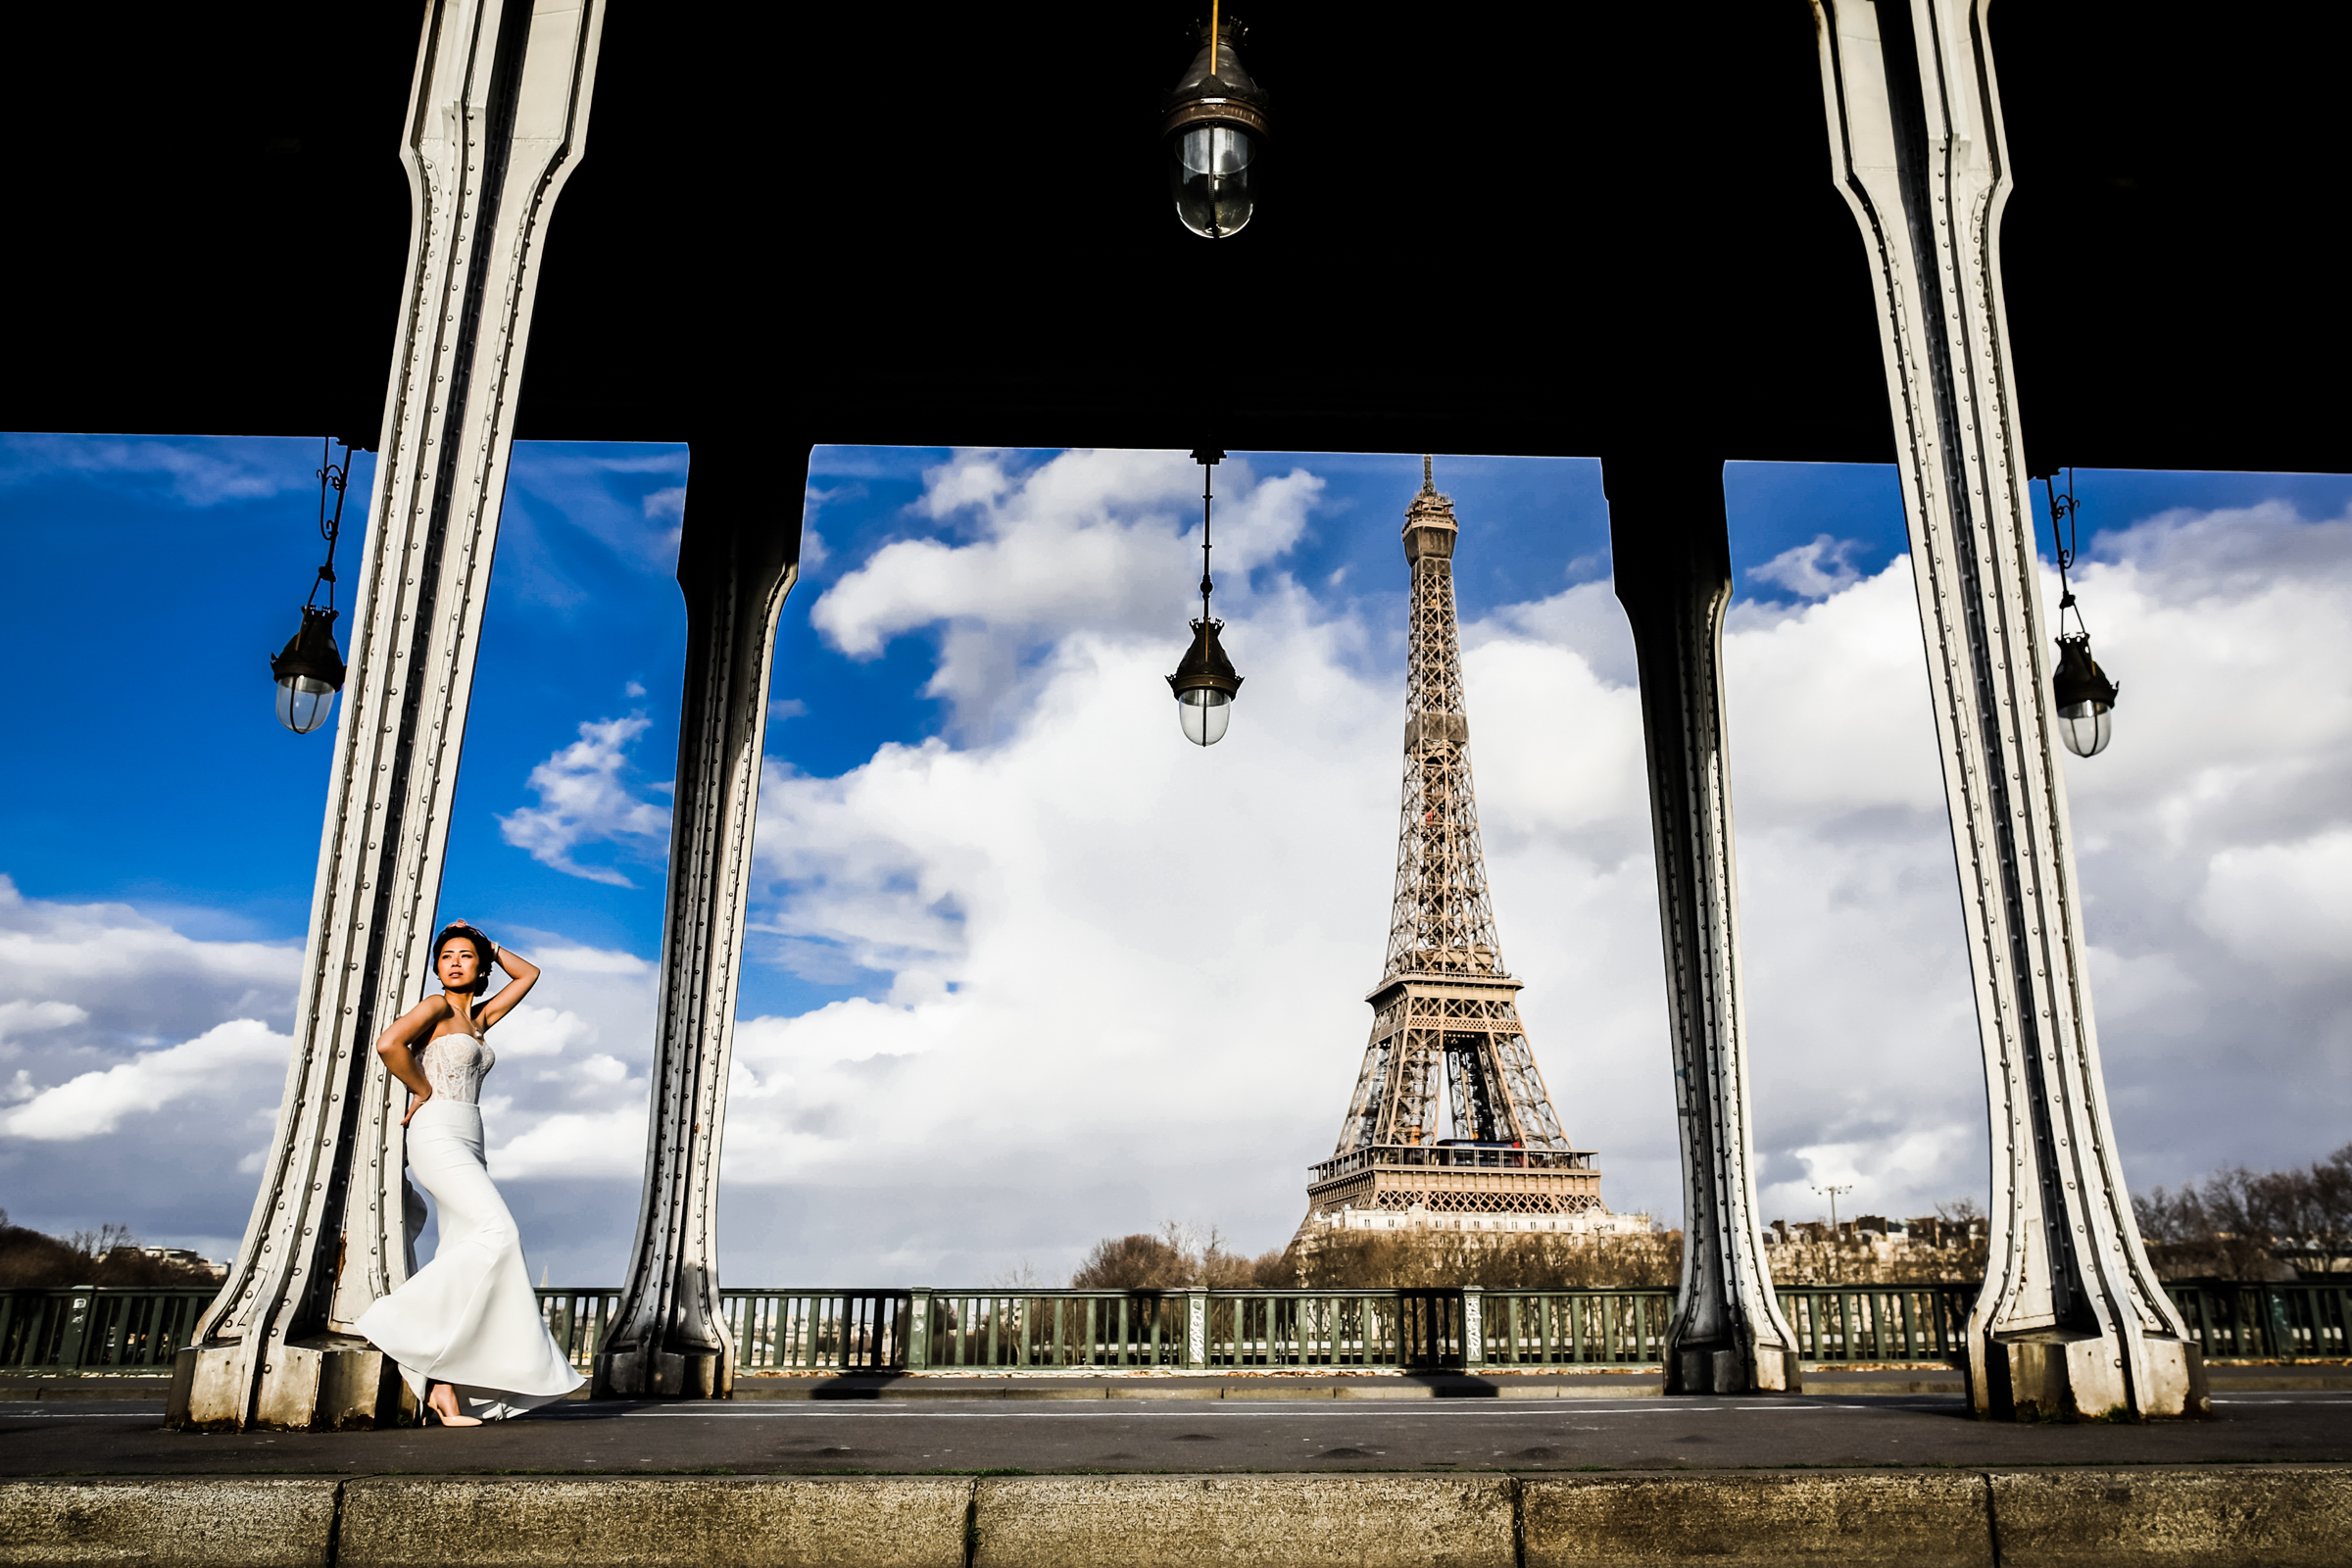 Elegant bride in strapless dress at the Eiffel Tower - photo by Julien Laurent-Georges